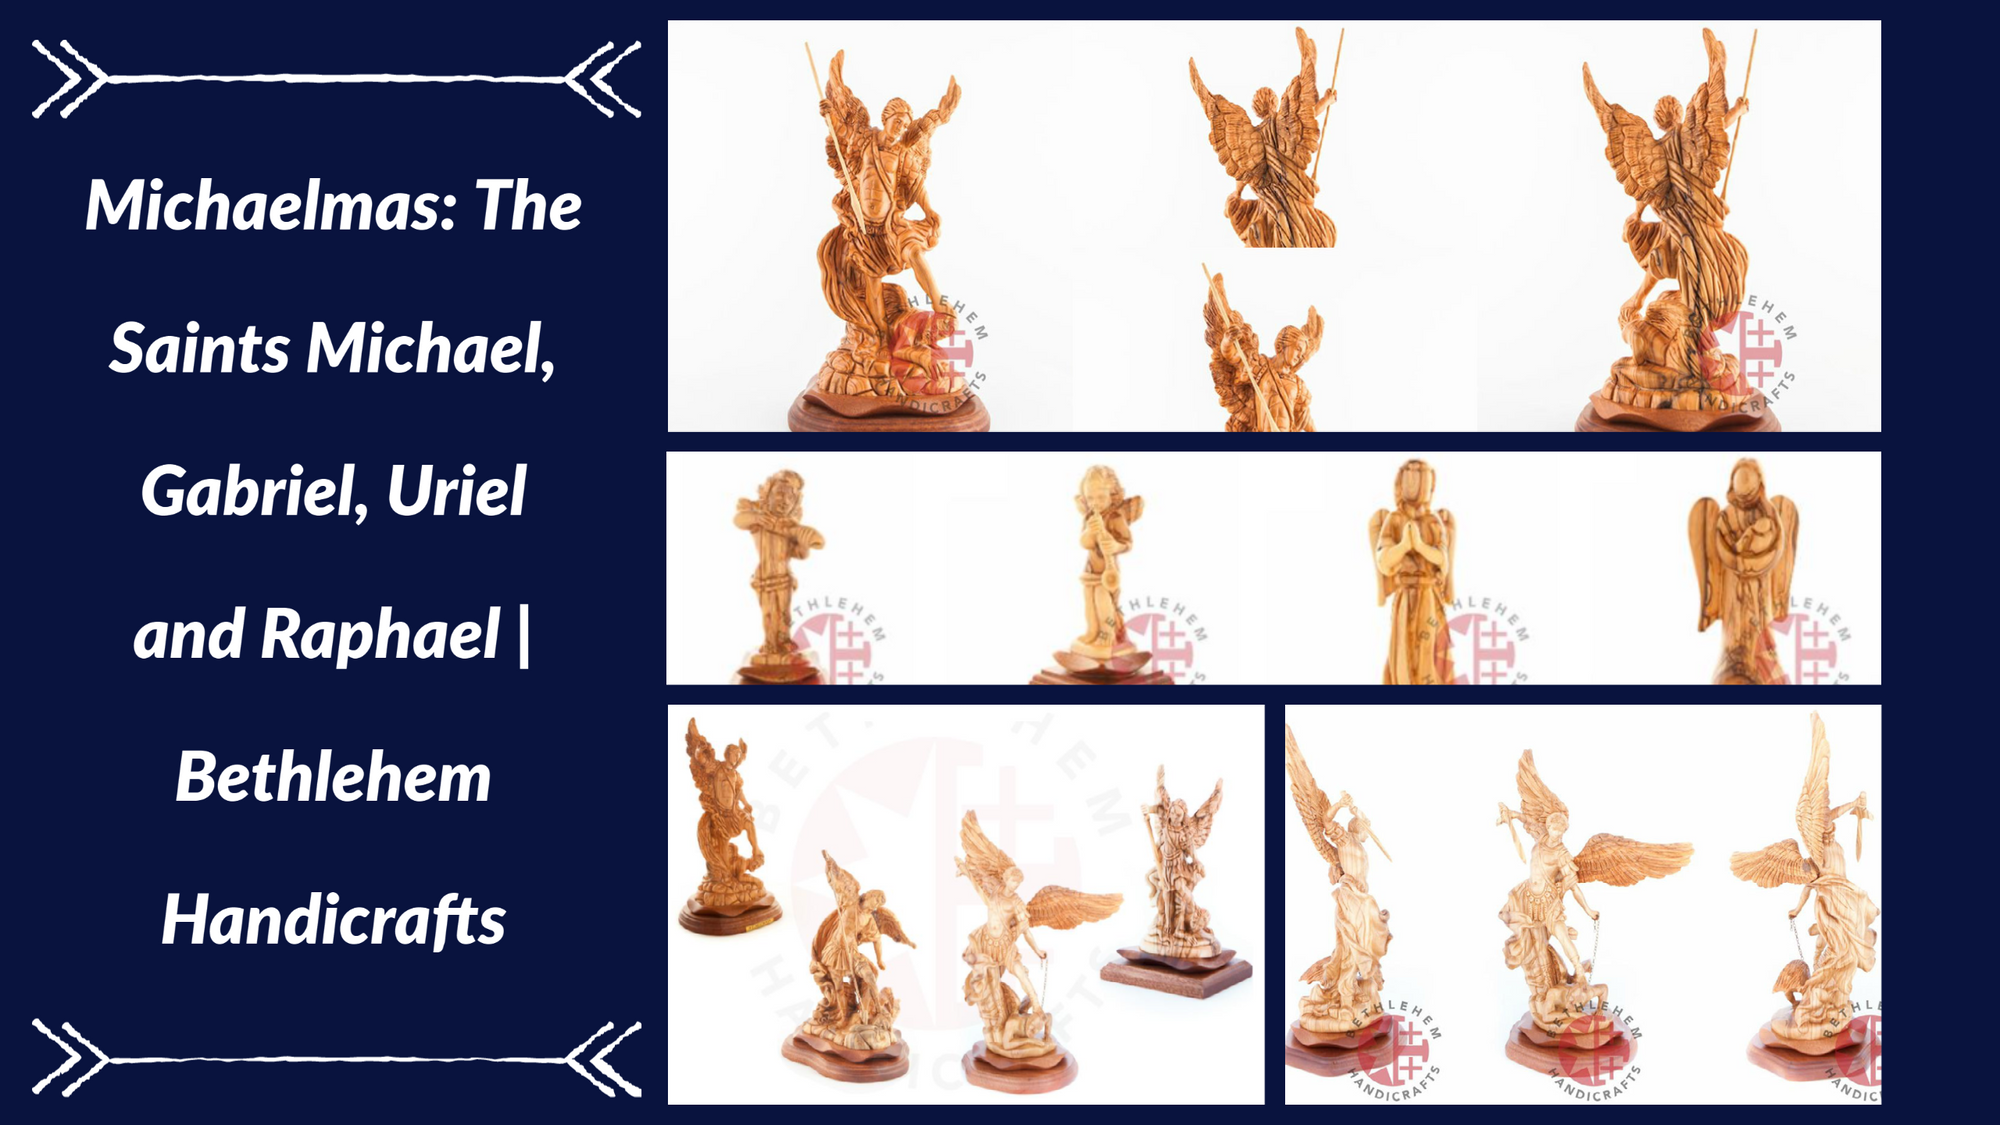 Michaelmas: The Saints Michael, Gabriel, Uriel and Raphael | Bethlehem Handicrafts